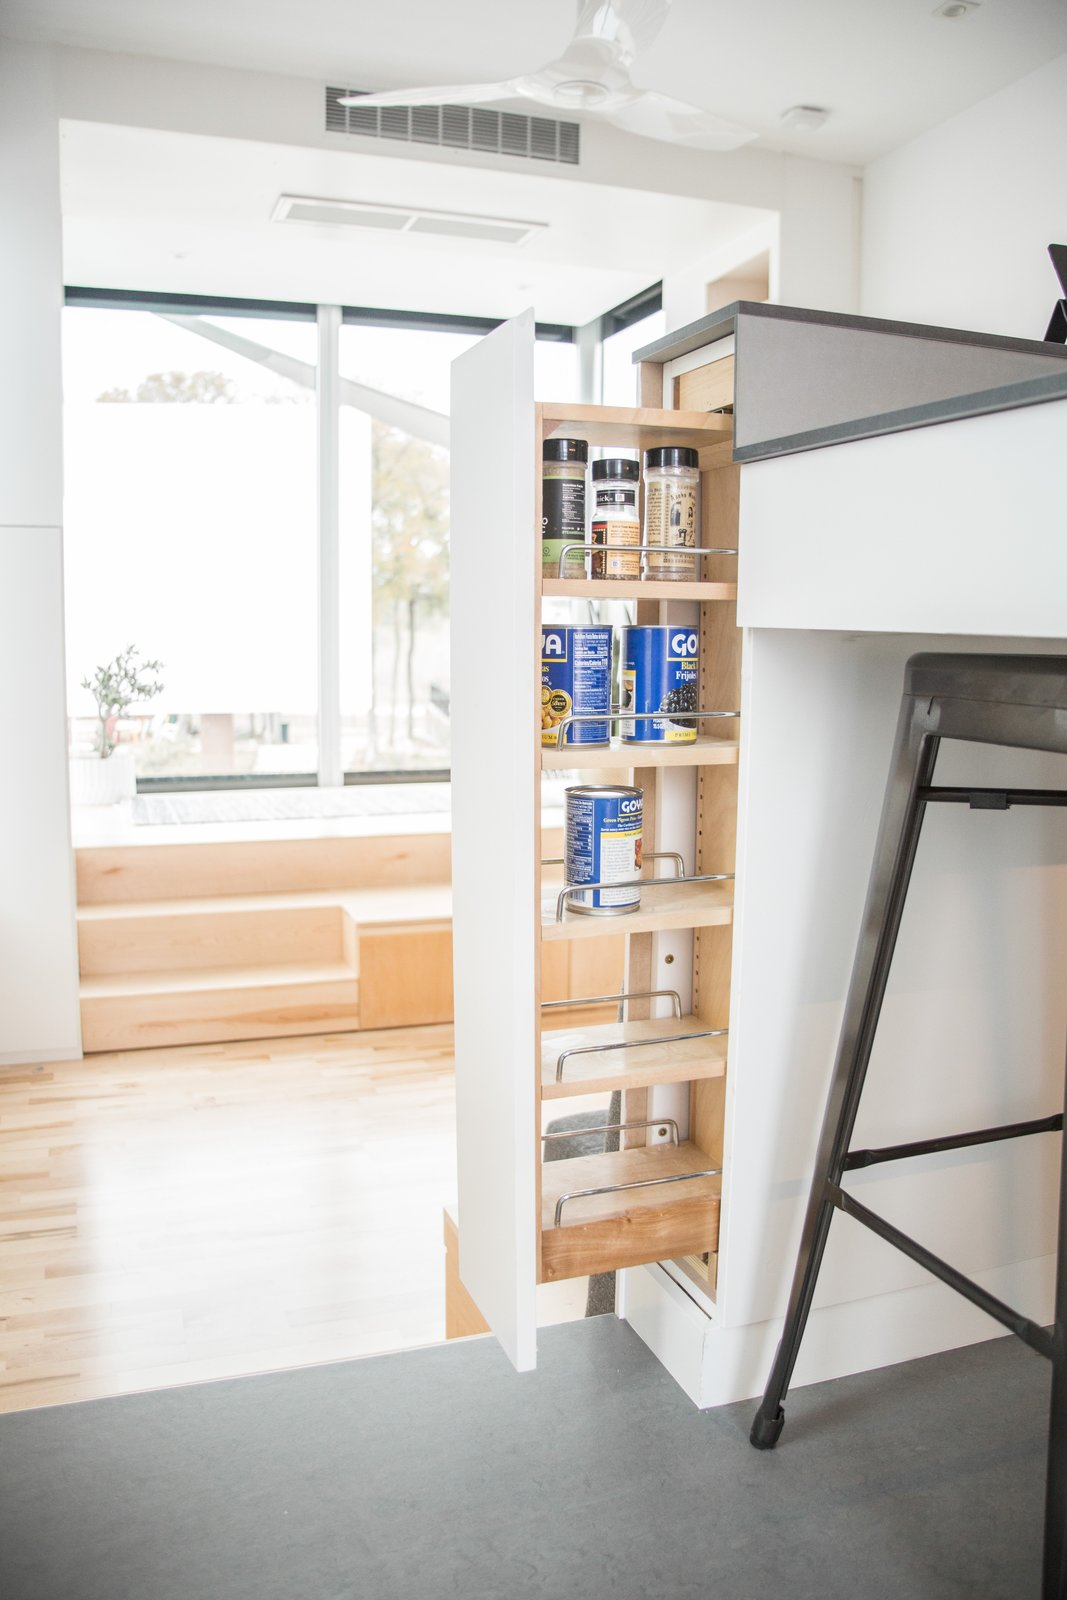 Living Room, Storage, and Light Hardwood Floor Every nook and cranny was utilized to save smartly save space and conceal clutter.  Photo 4 of 9 in Can These Tiny, Modular Smart Homes Relieve the Demand For Affordable Housing?